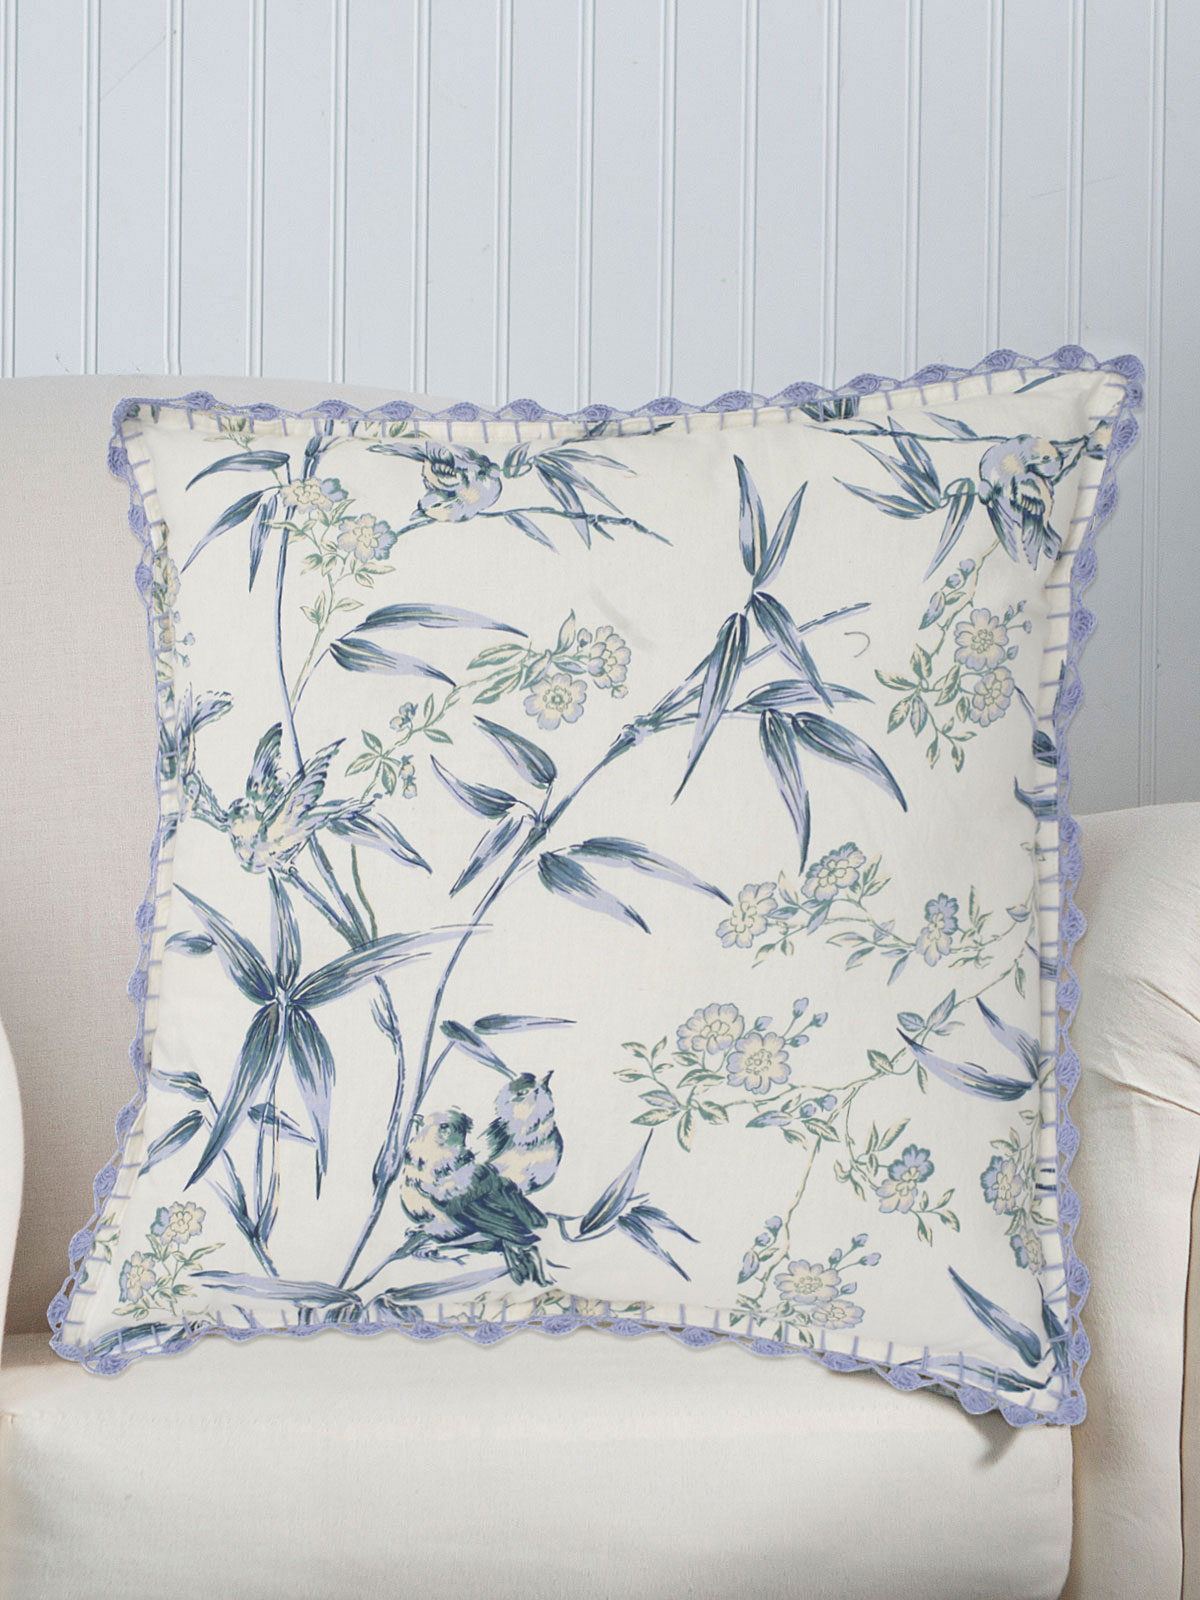 Bamboo Garden Cushion Cover